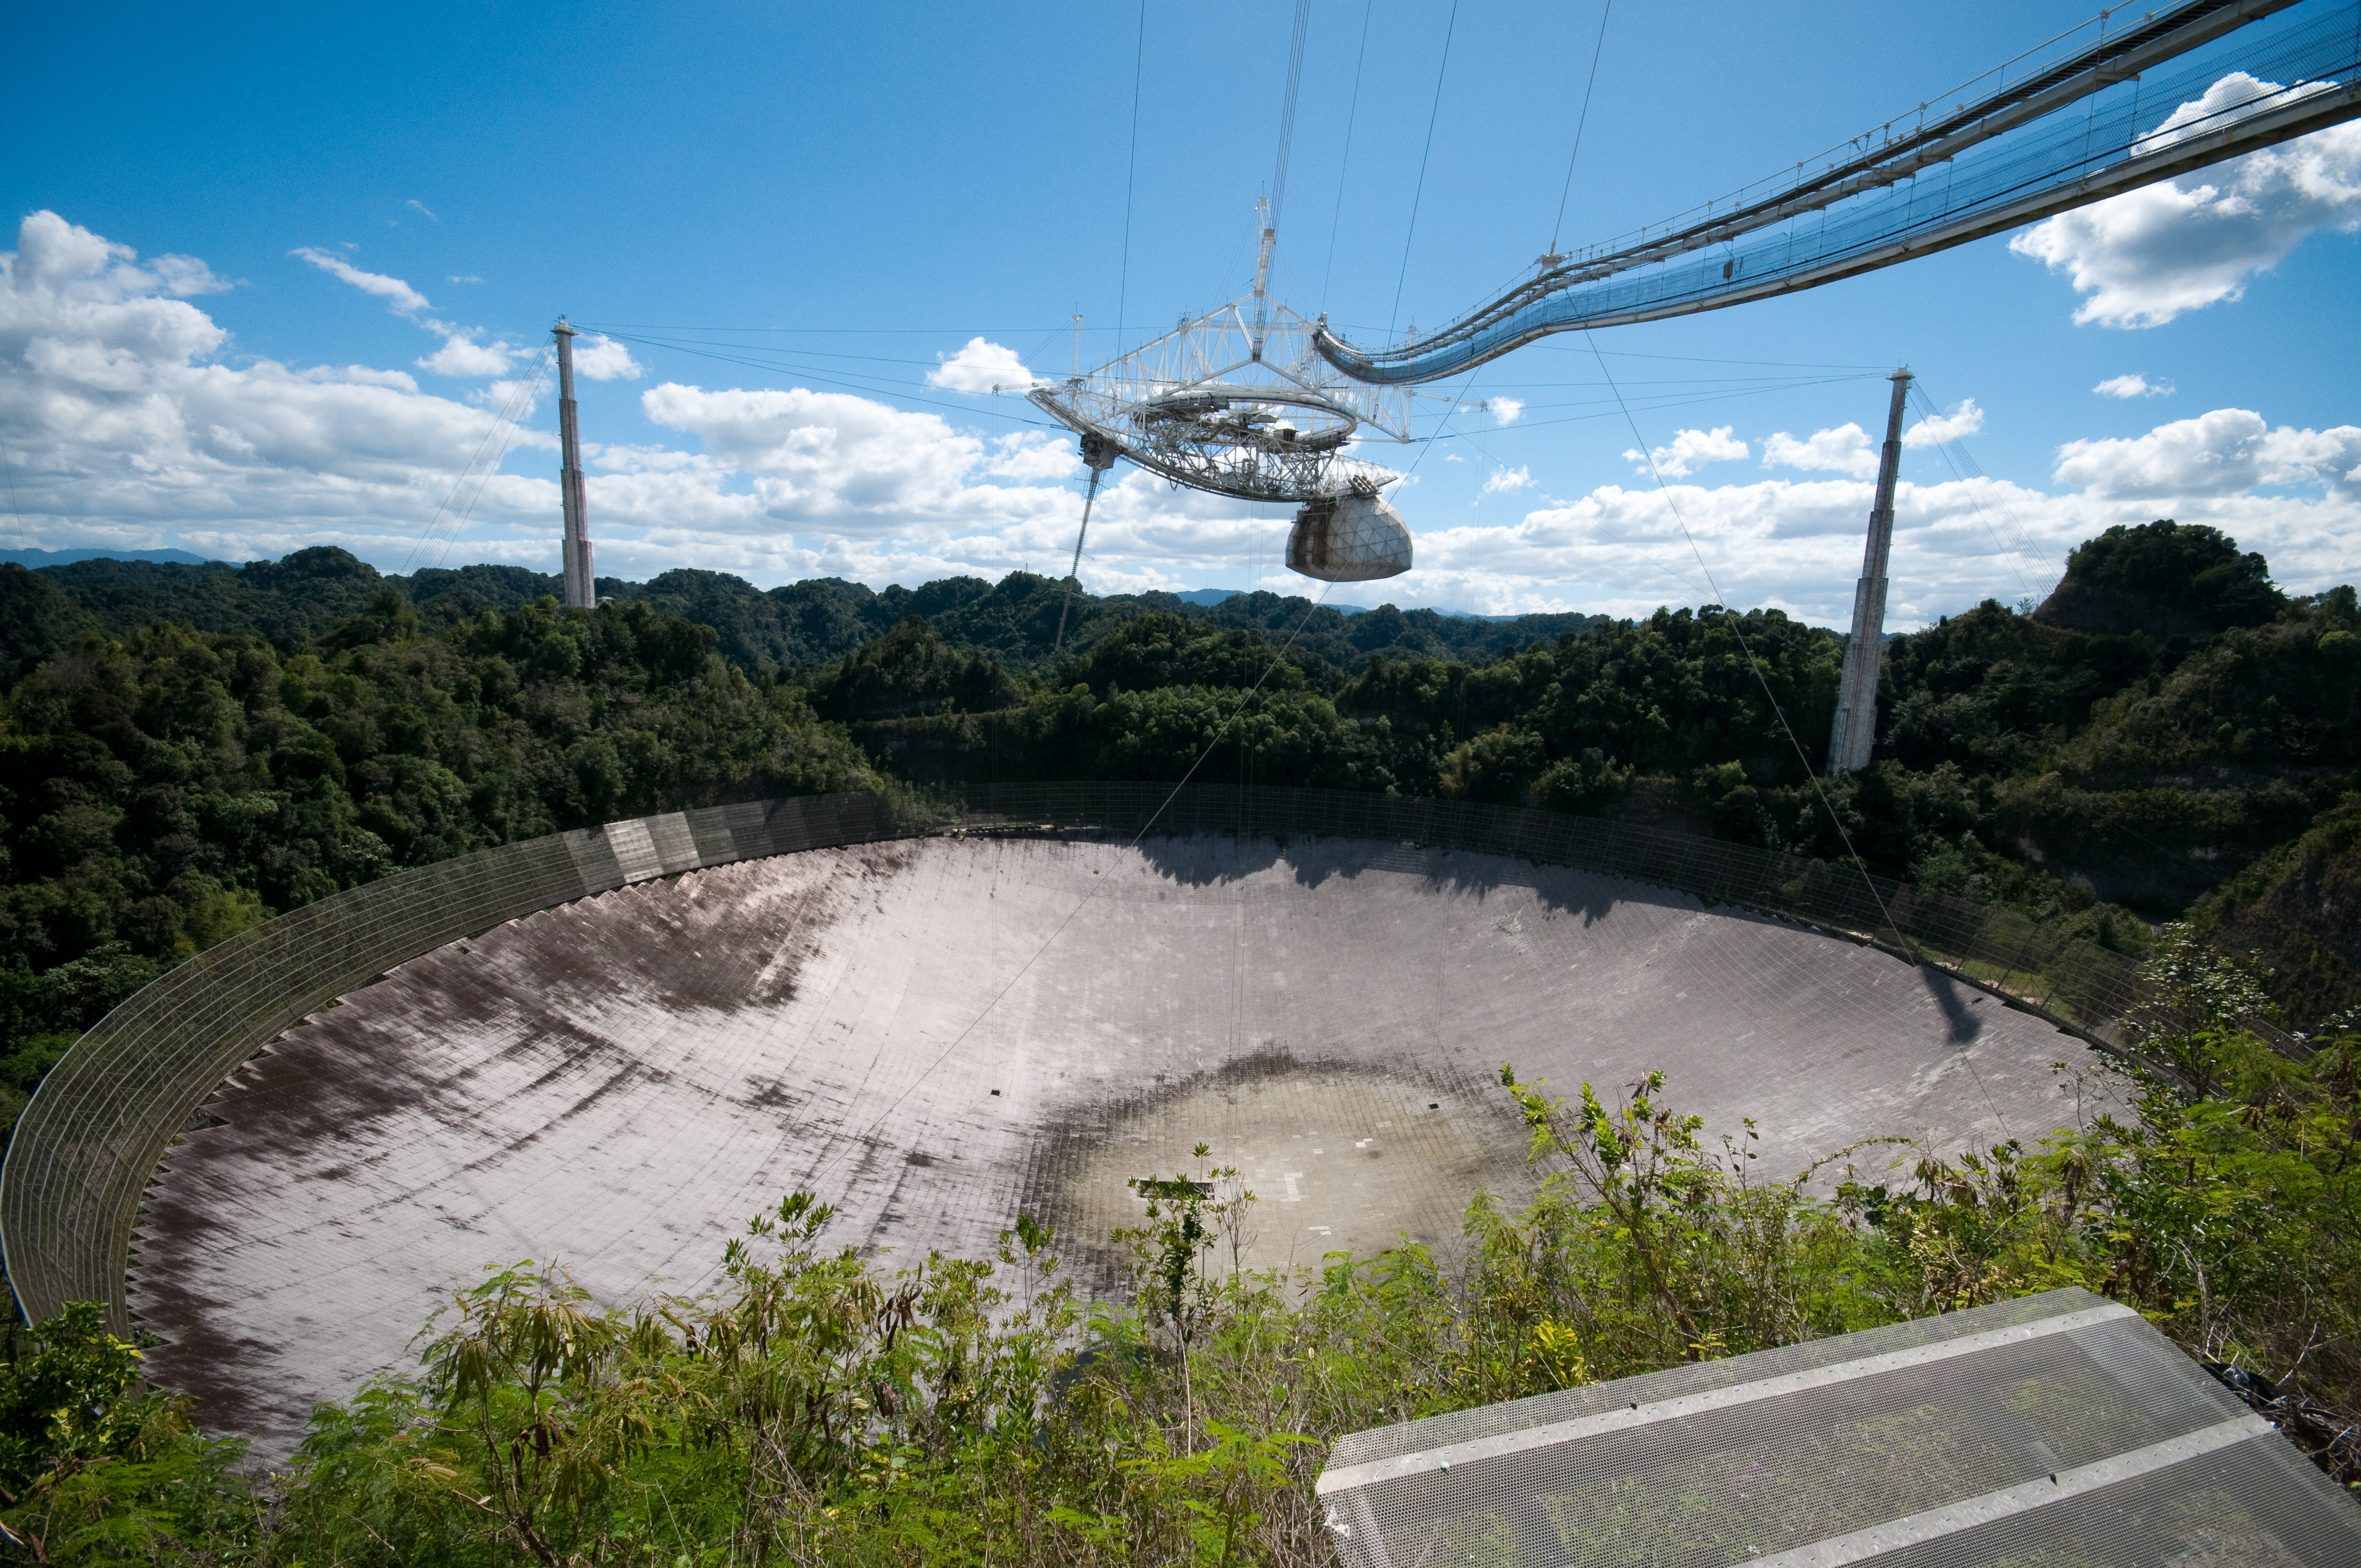 The Arecibo Radio Telescope in Puerto Rico. Image courtesy of SETI.